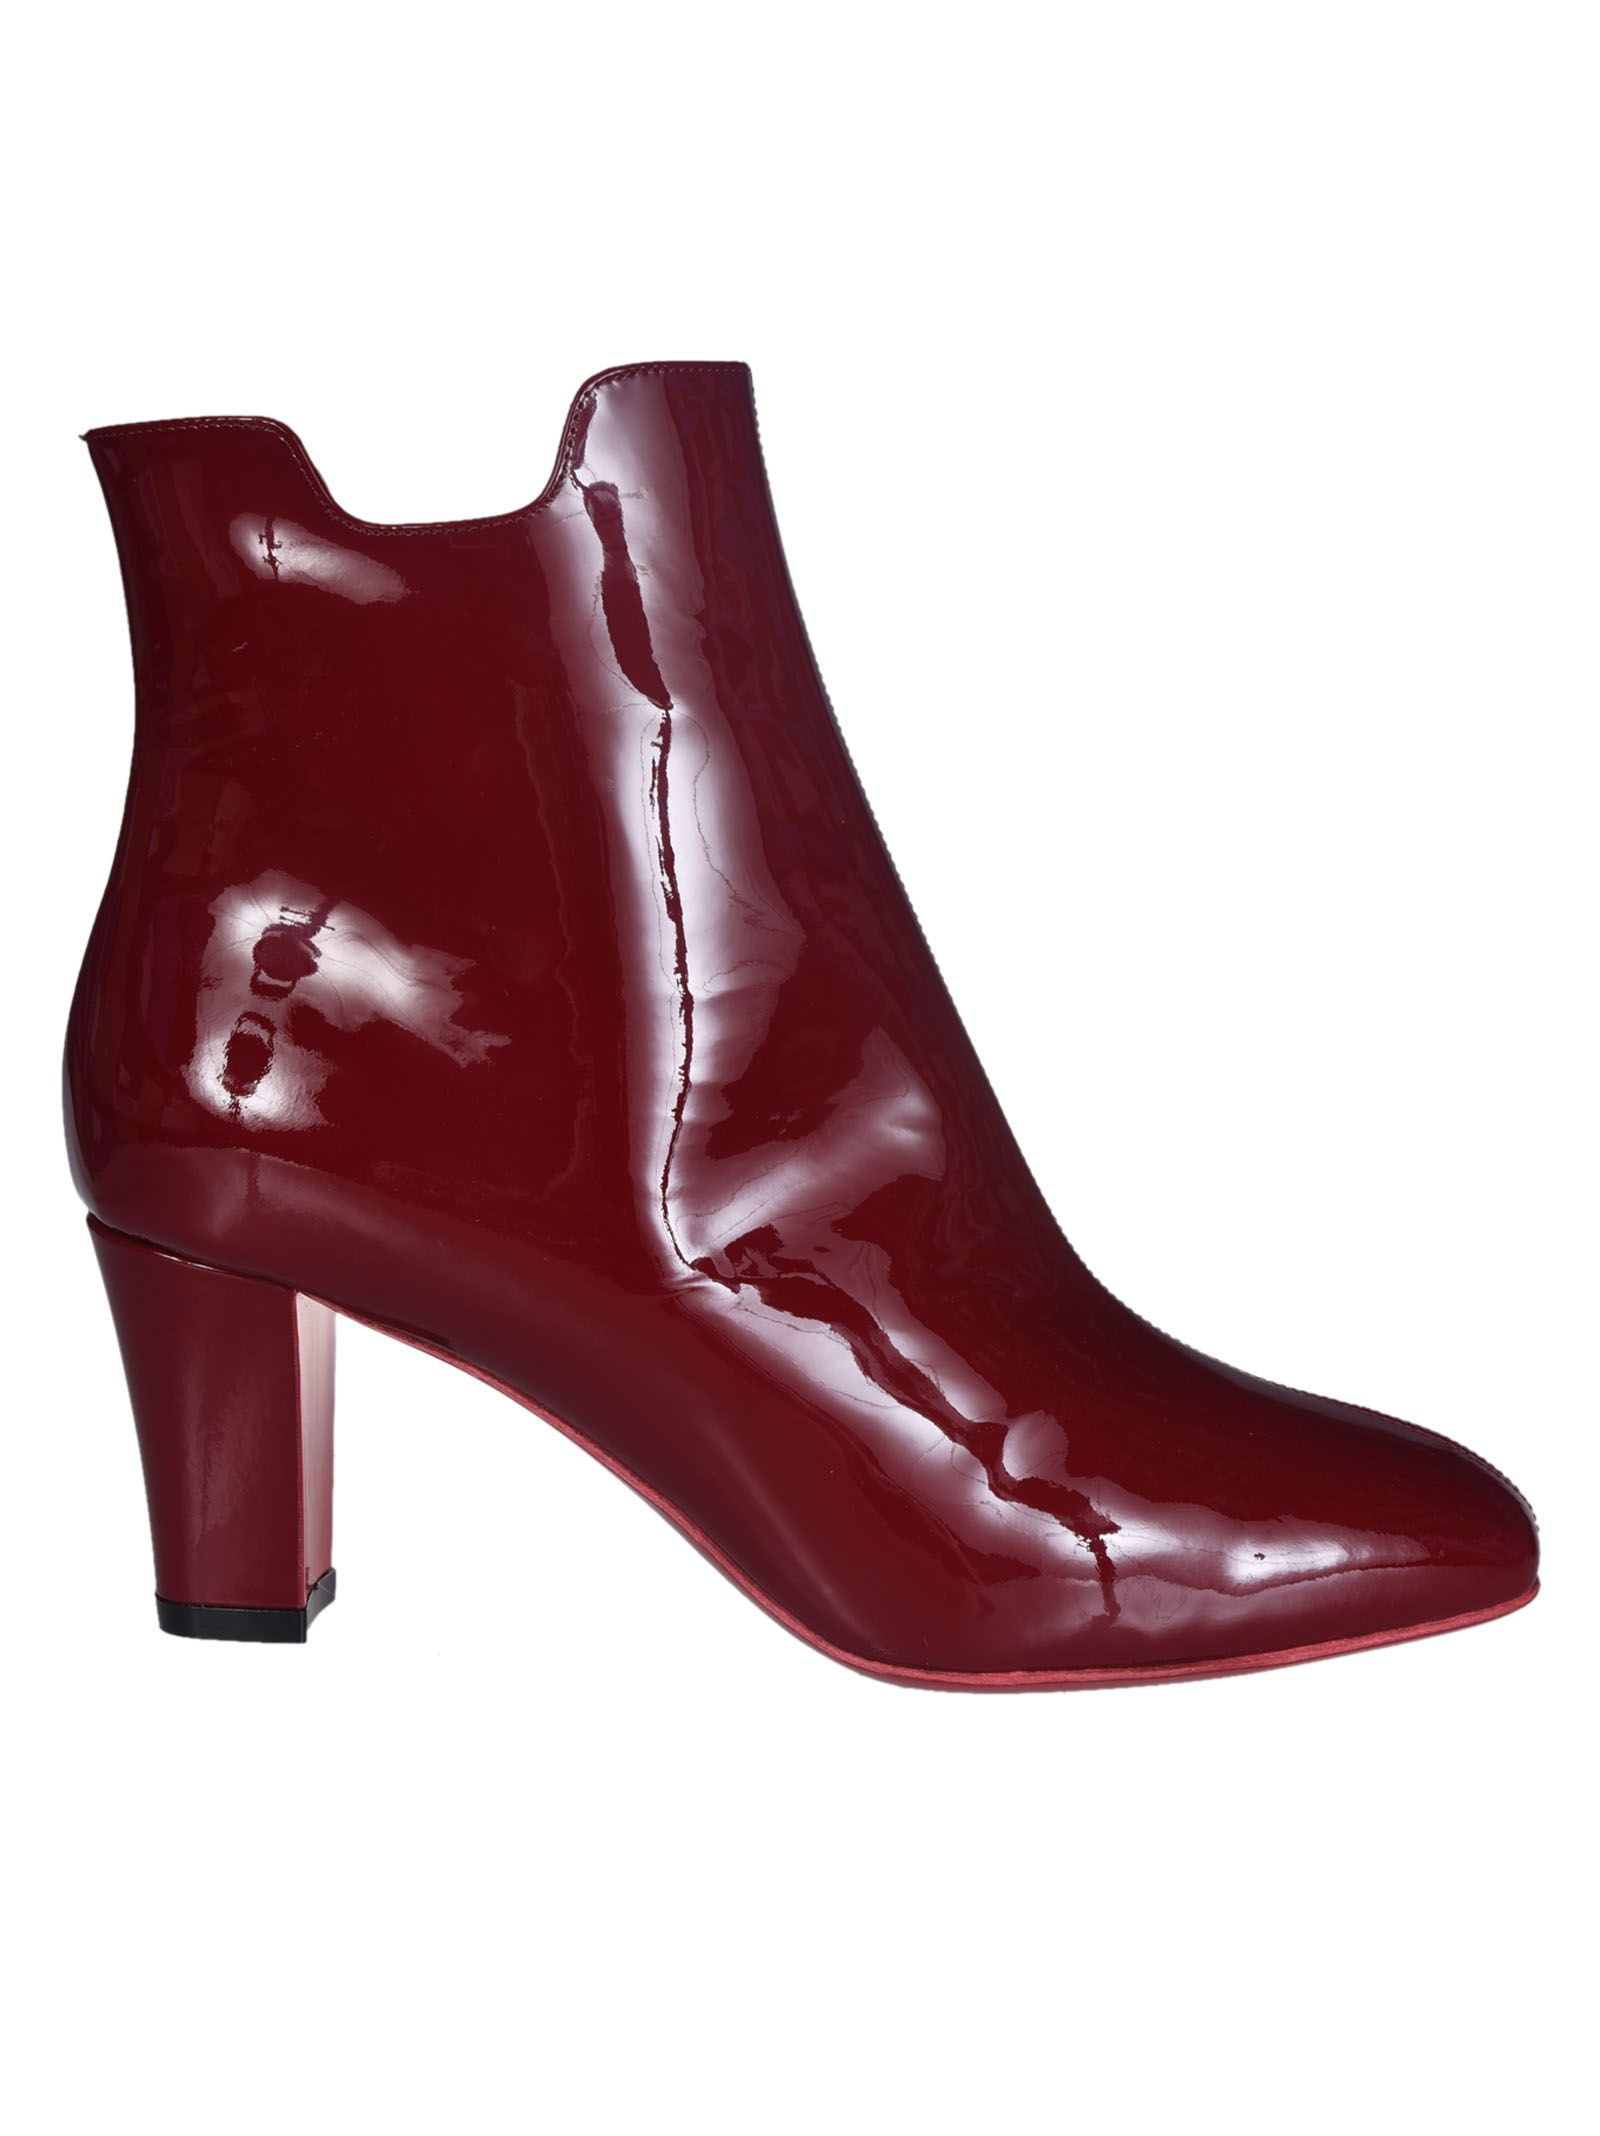 Block Heel Boots from Christian Louboutin: Red Block patent leather Heel Boots with side zip closure and signature red sole